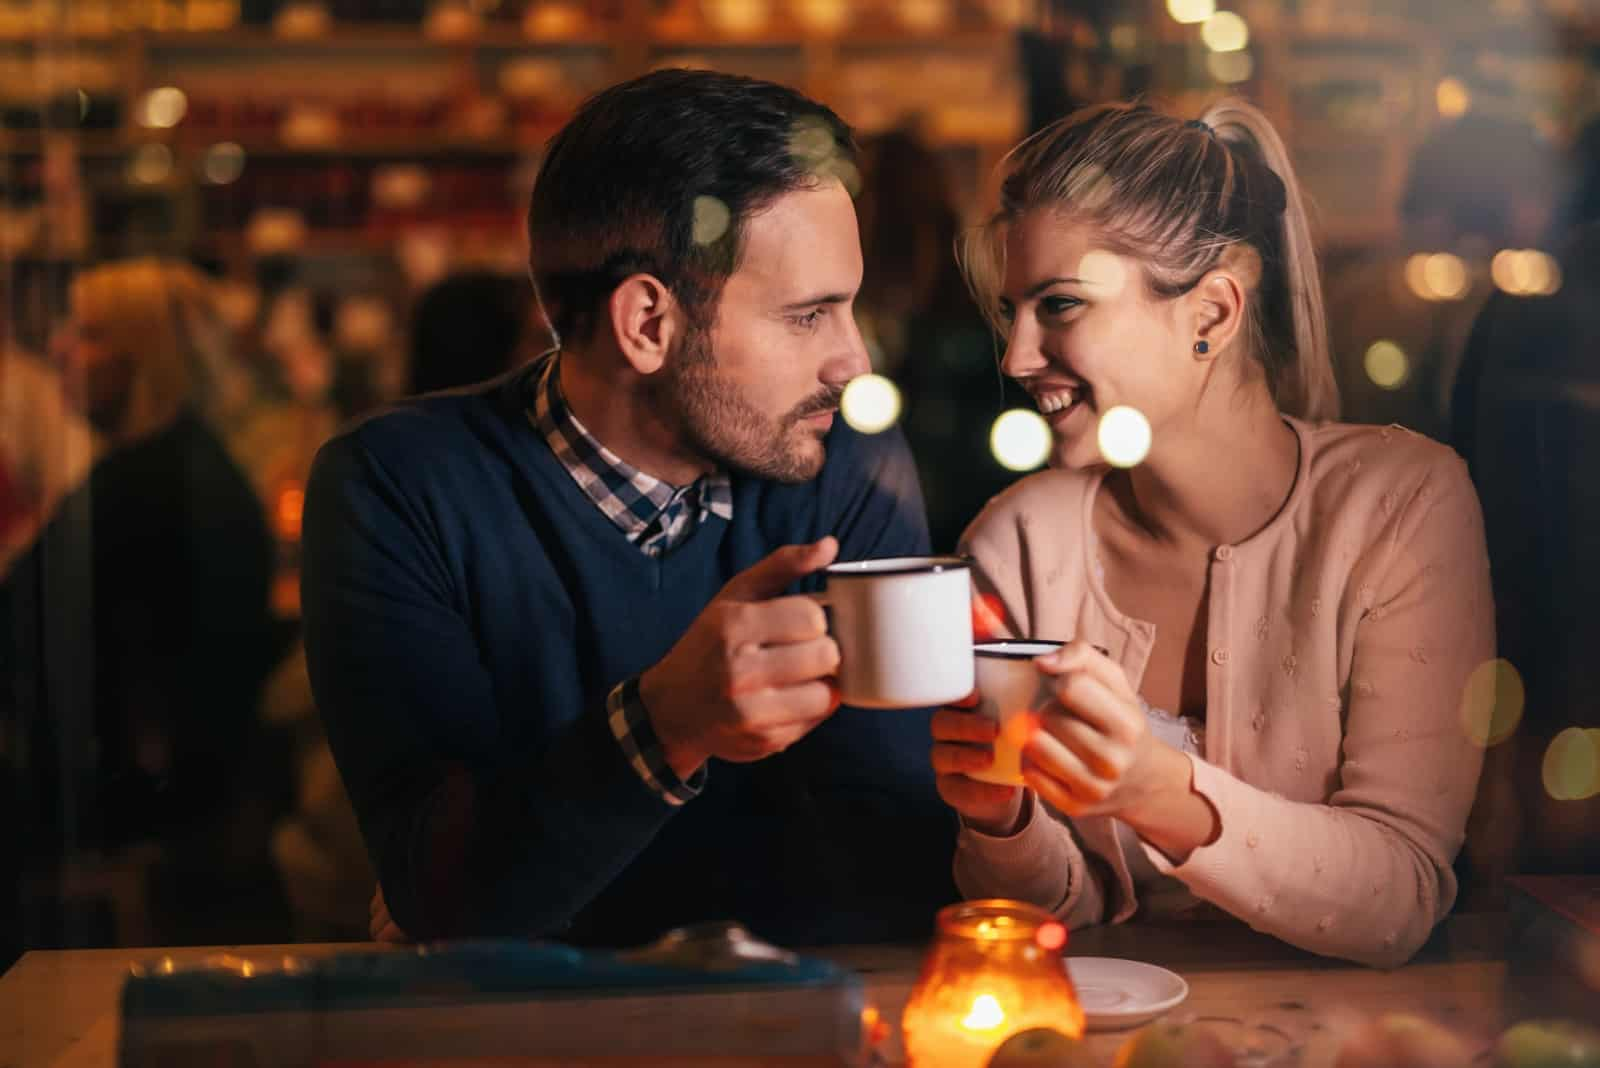 man looking at woman while sitting in cafe